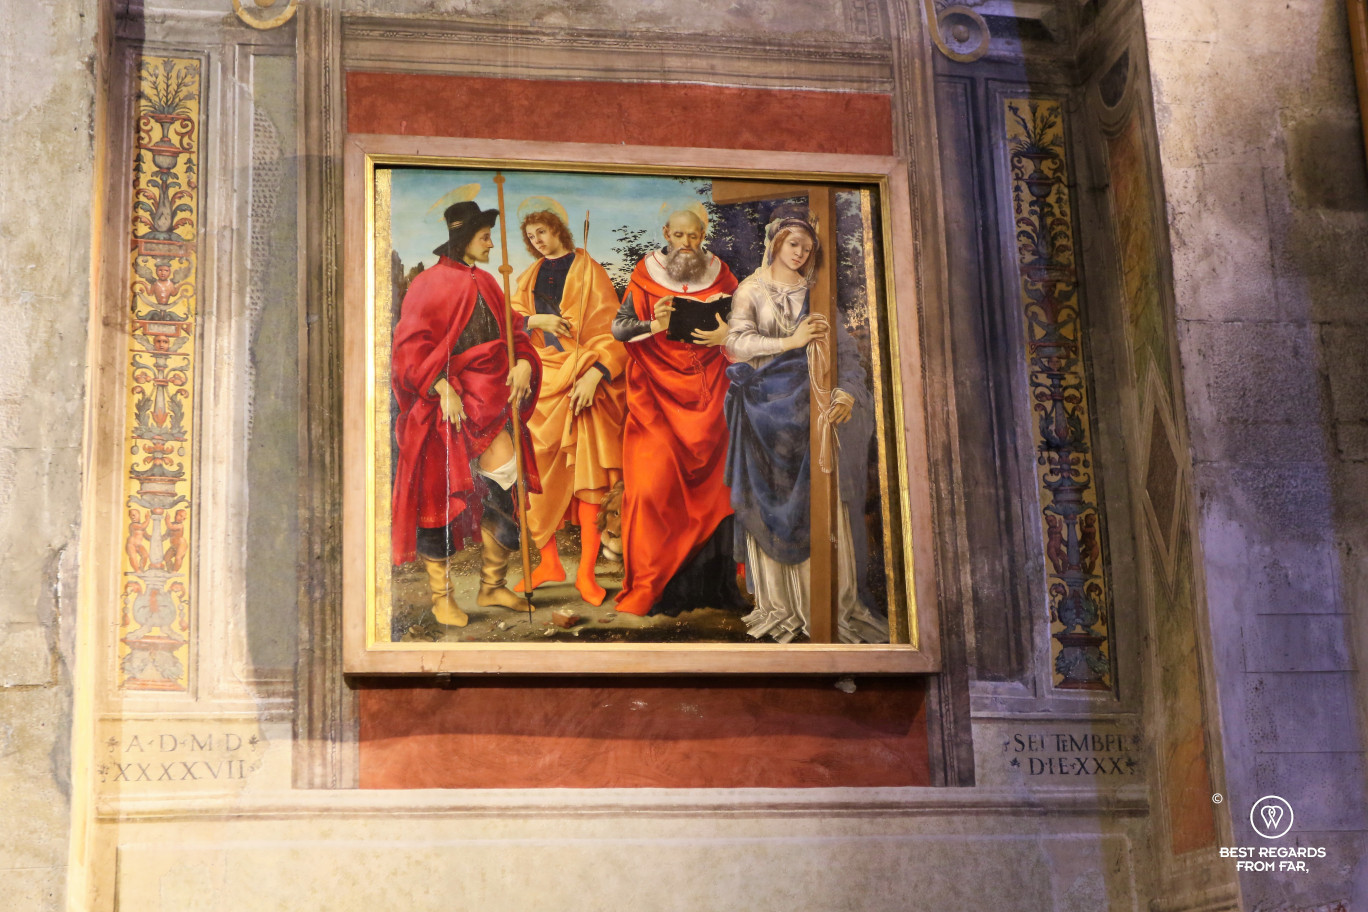 Four Saints by Filippino Lippi in the San Michele in Foro church, Lucca, Italy